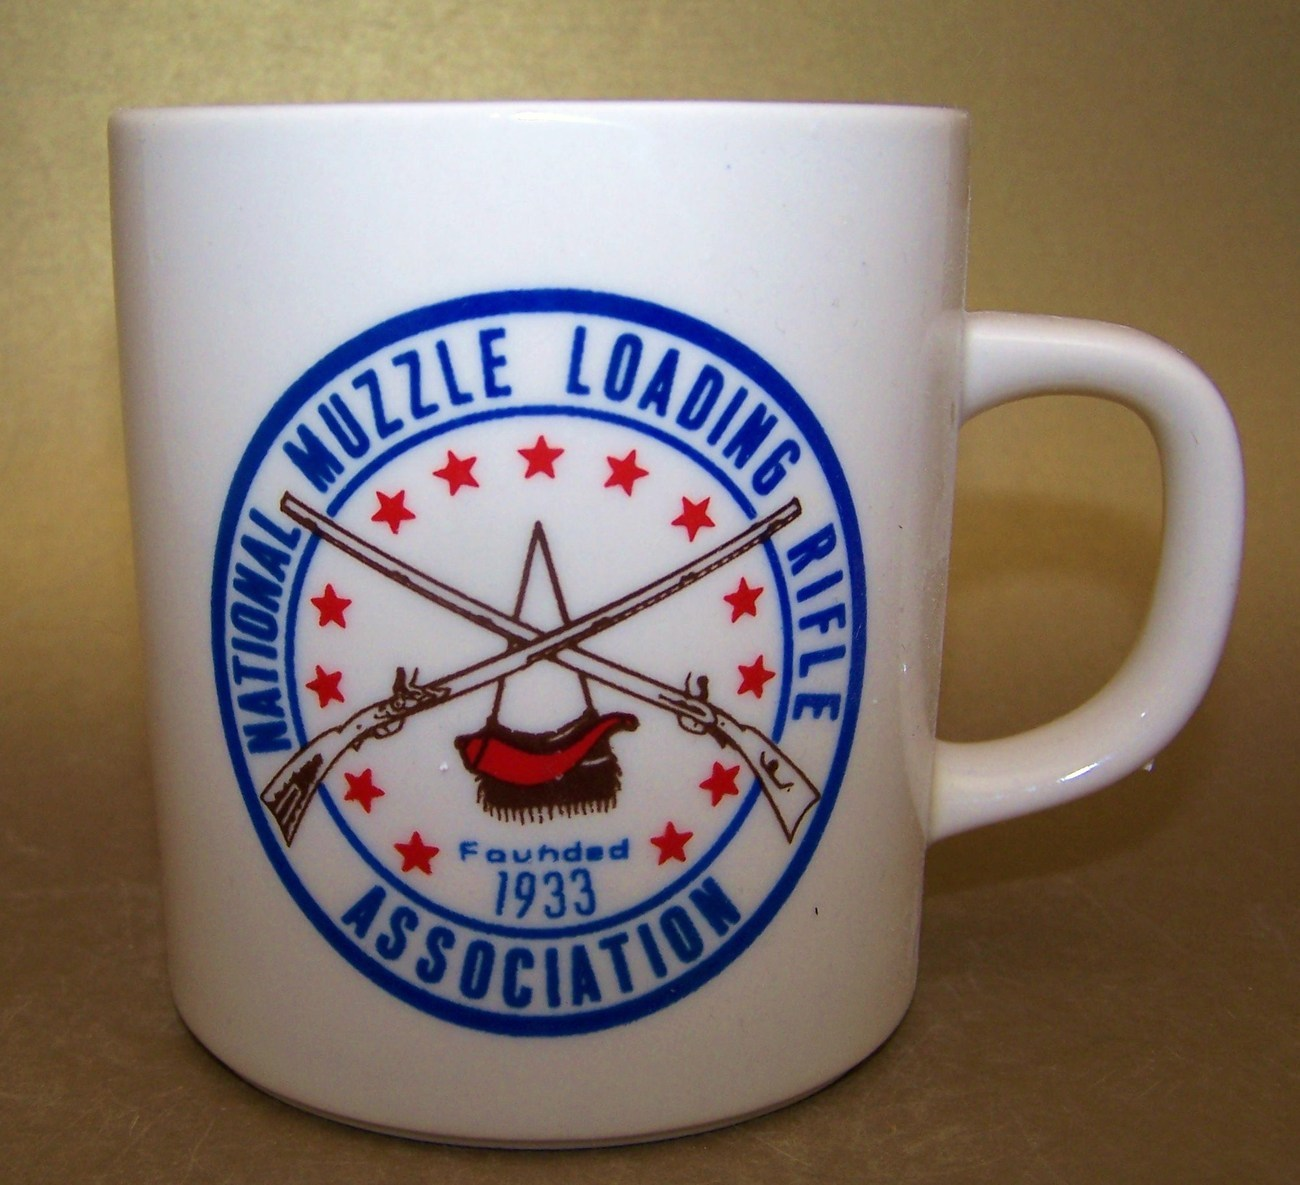 National Muzzle Loading Rifle Association Ceramic Mug